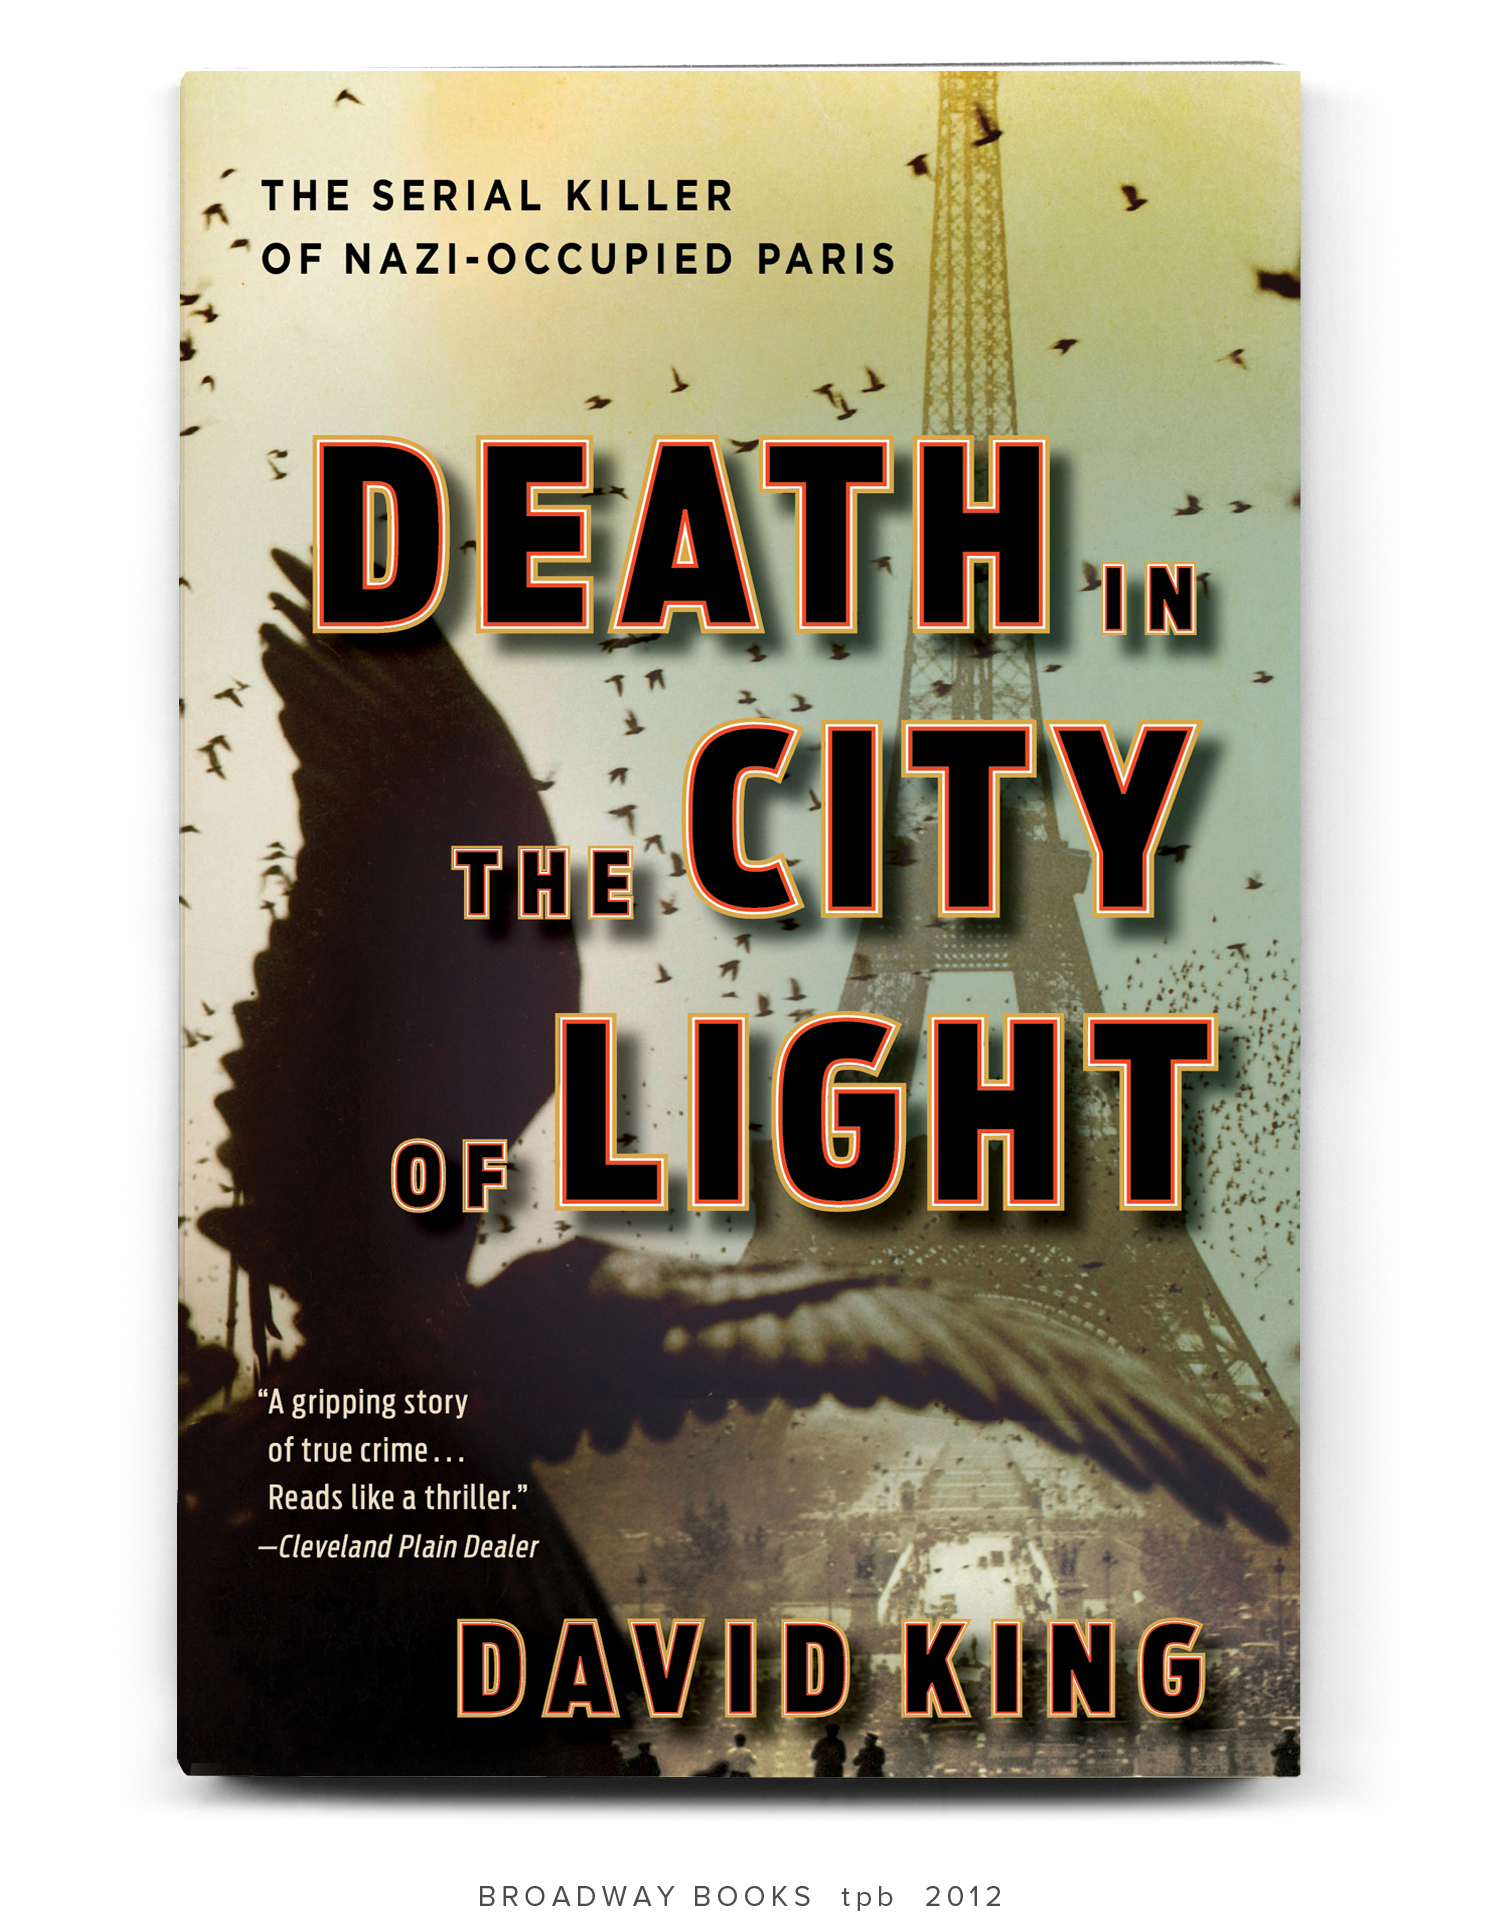 DEATH-IN-THE-CITY-OF-LIGHT-tpb-ss6.jpg